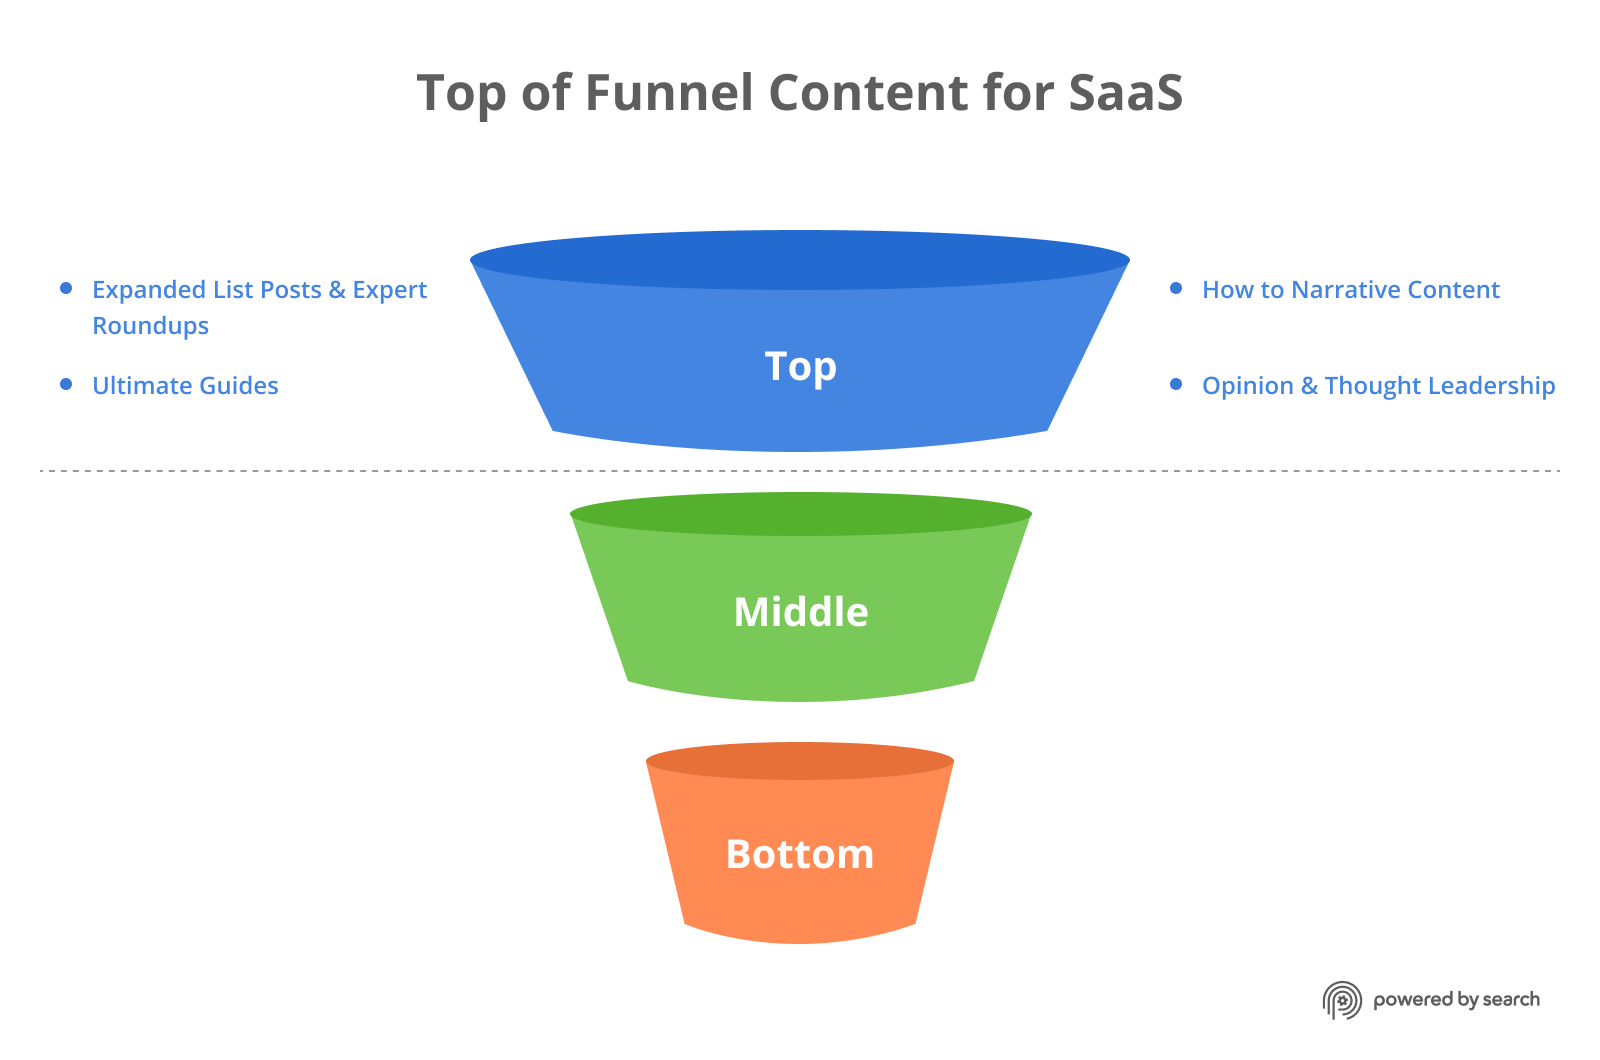 Top of the funnel content types for B2B SaaS